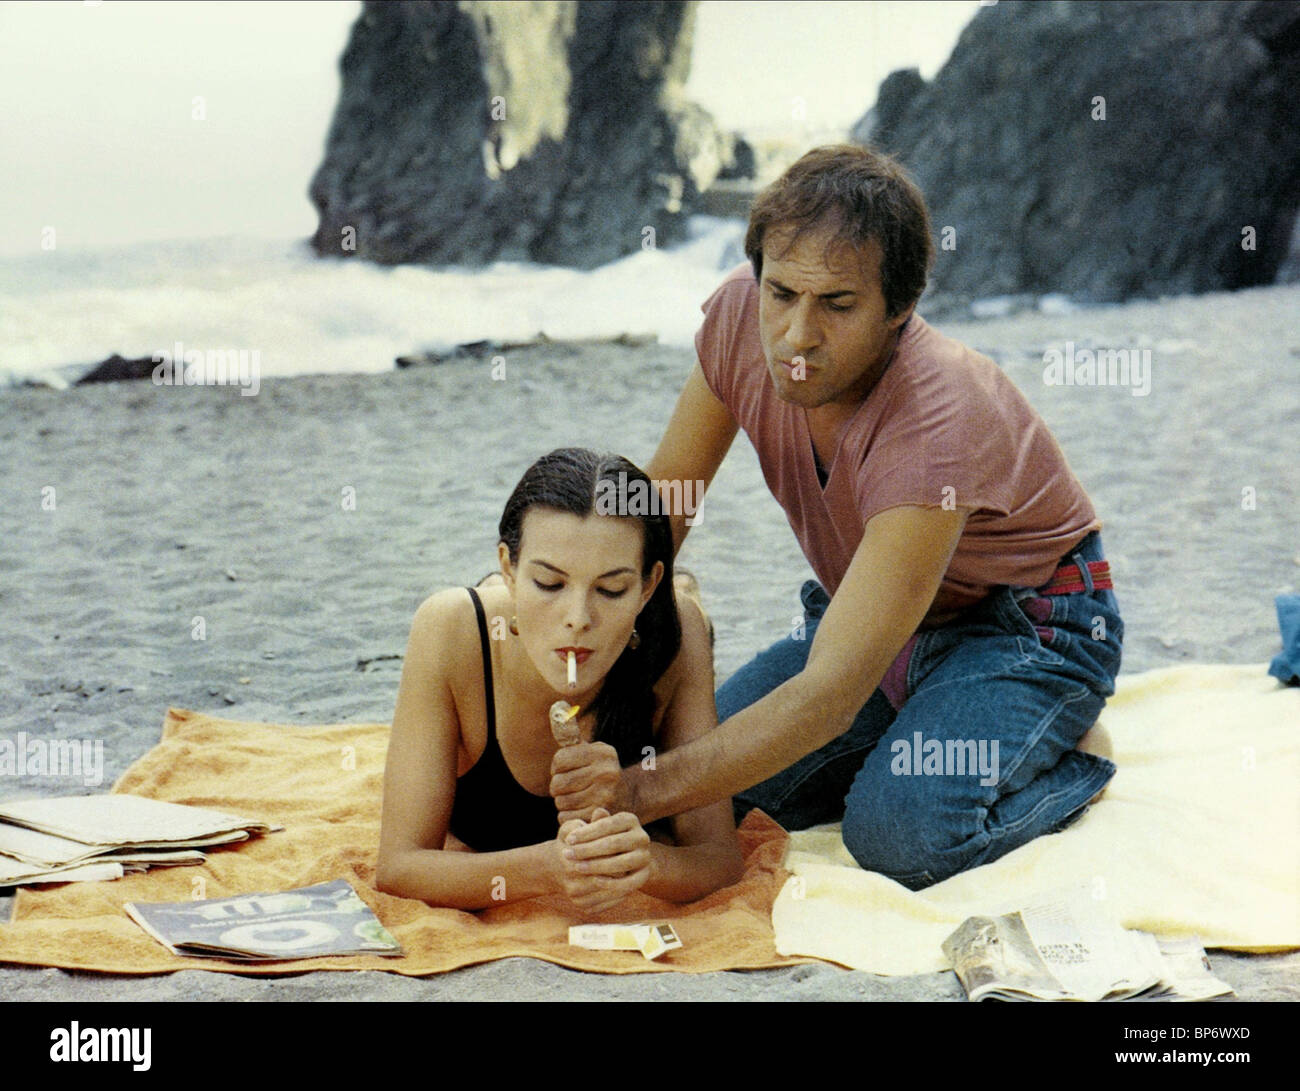 Carole Bouquet Adriano Celentano Bingo Bongo 1982 Stock Photo